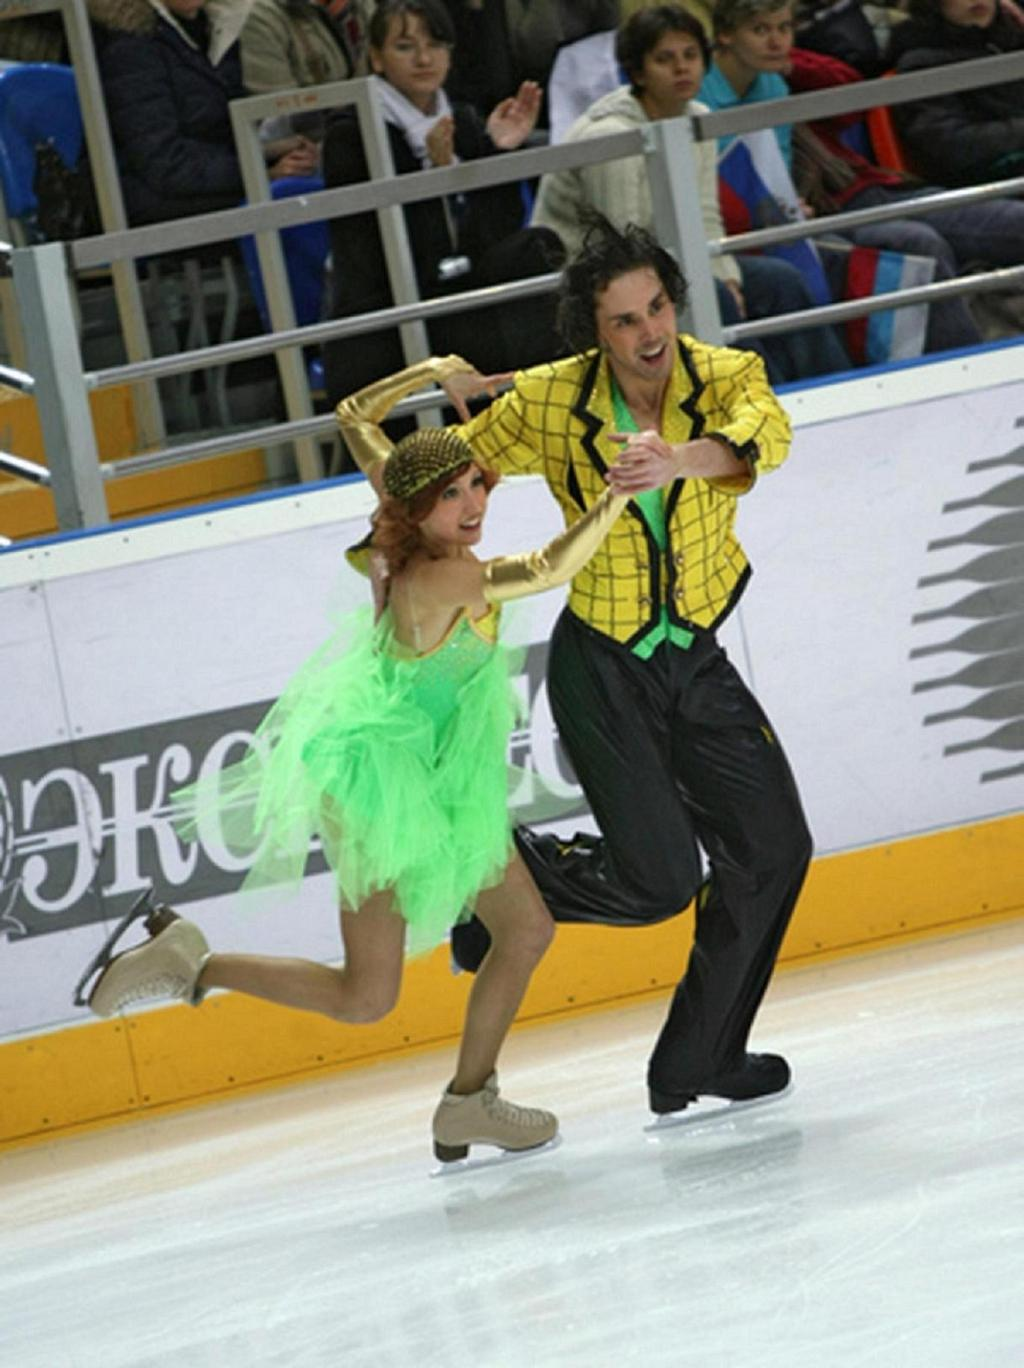 kkokhlova-and-novitsky-russian-figure-skaters